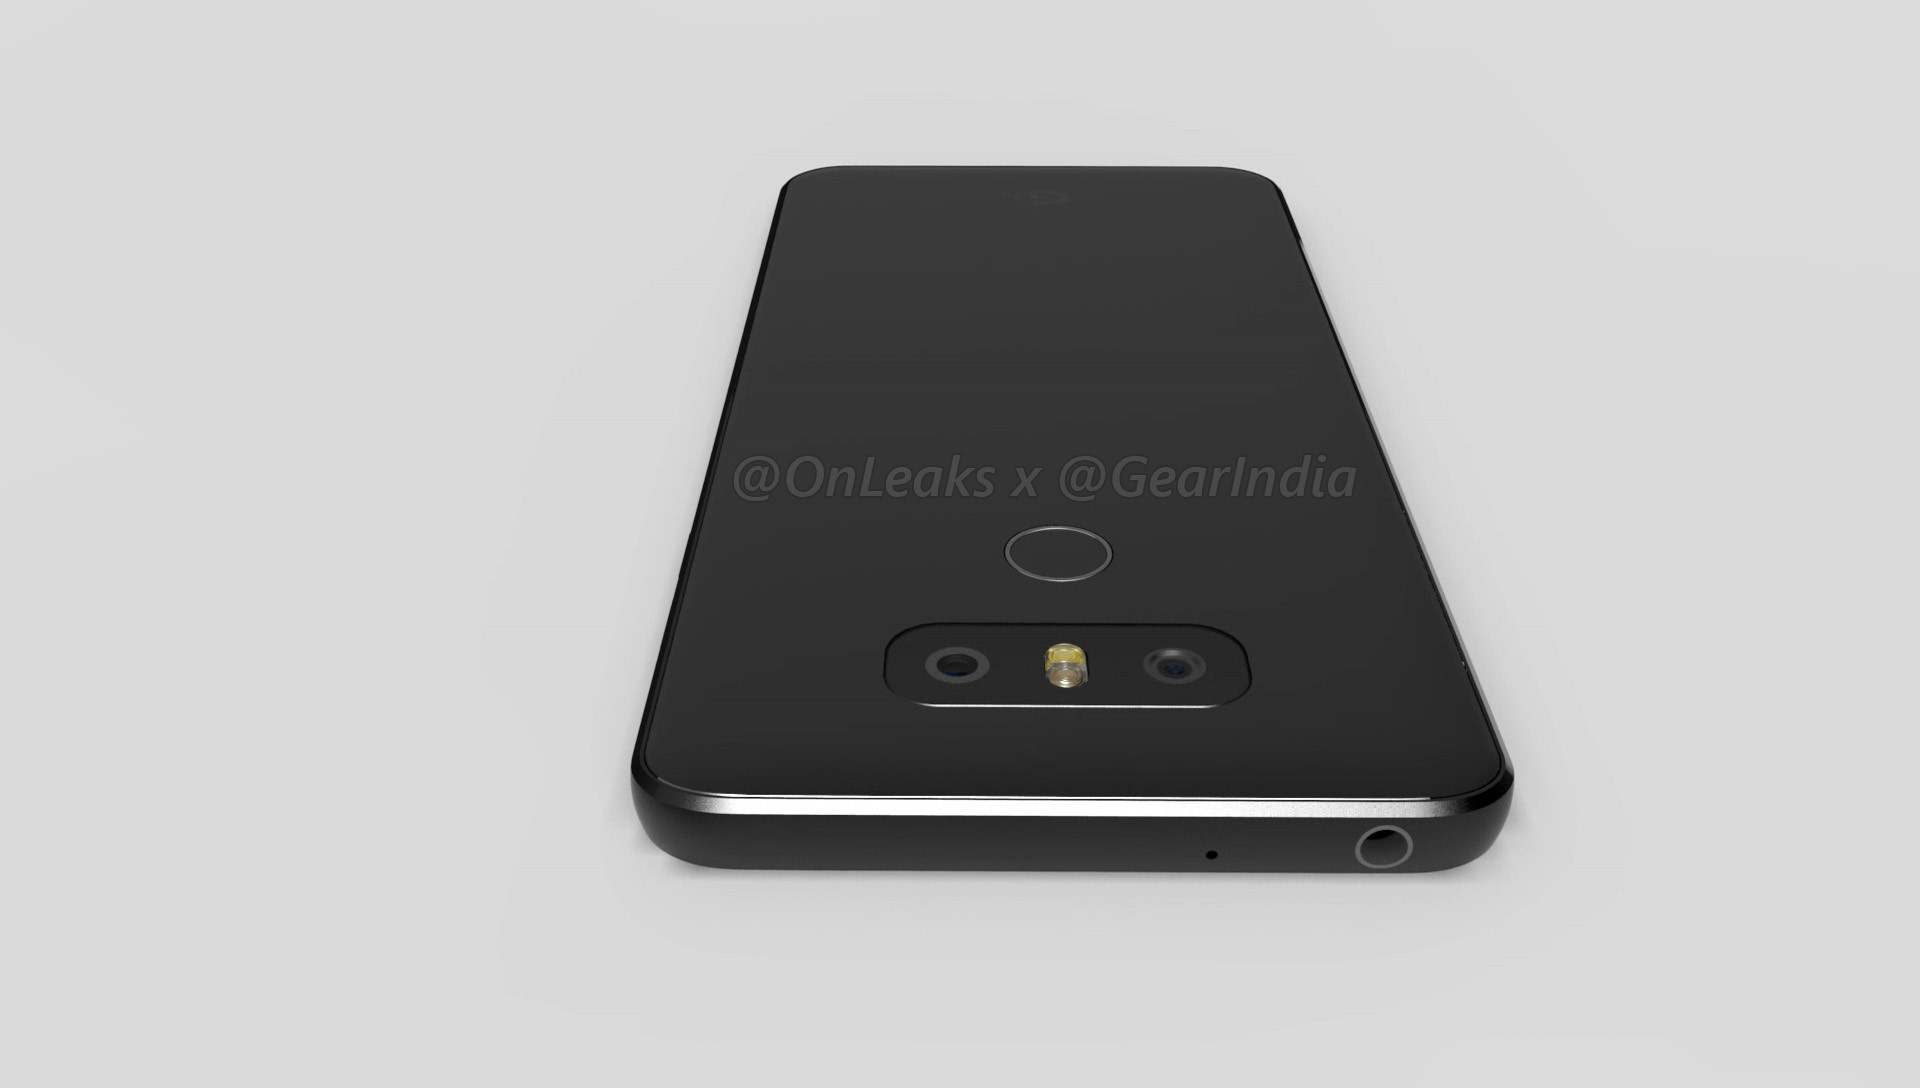 1482906395_renders-of-lg-g6-based-on-factory-cad-images-5.jpg